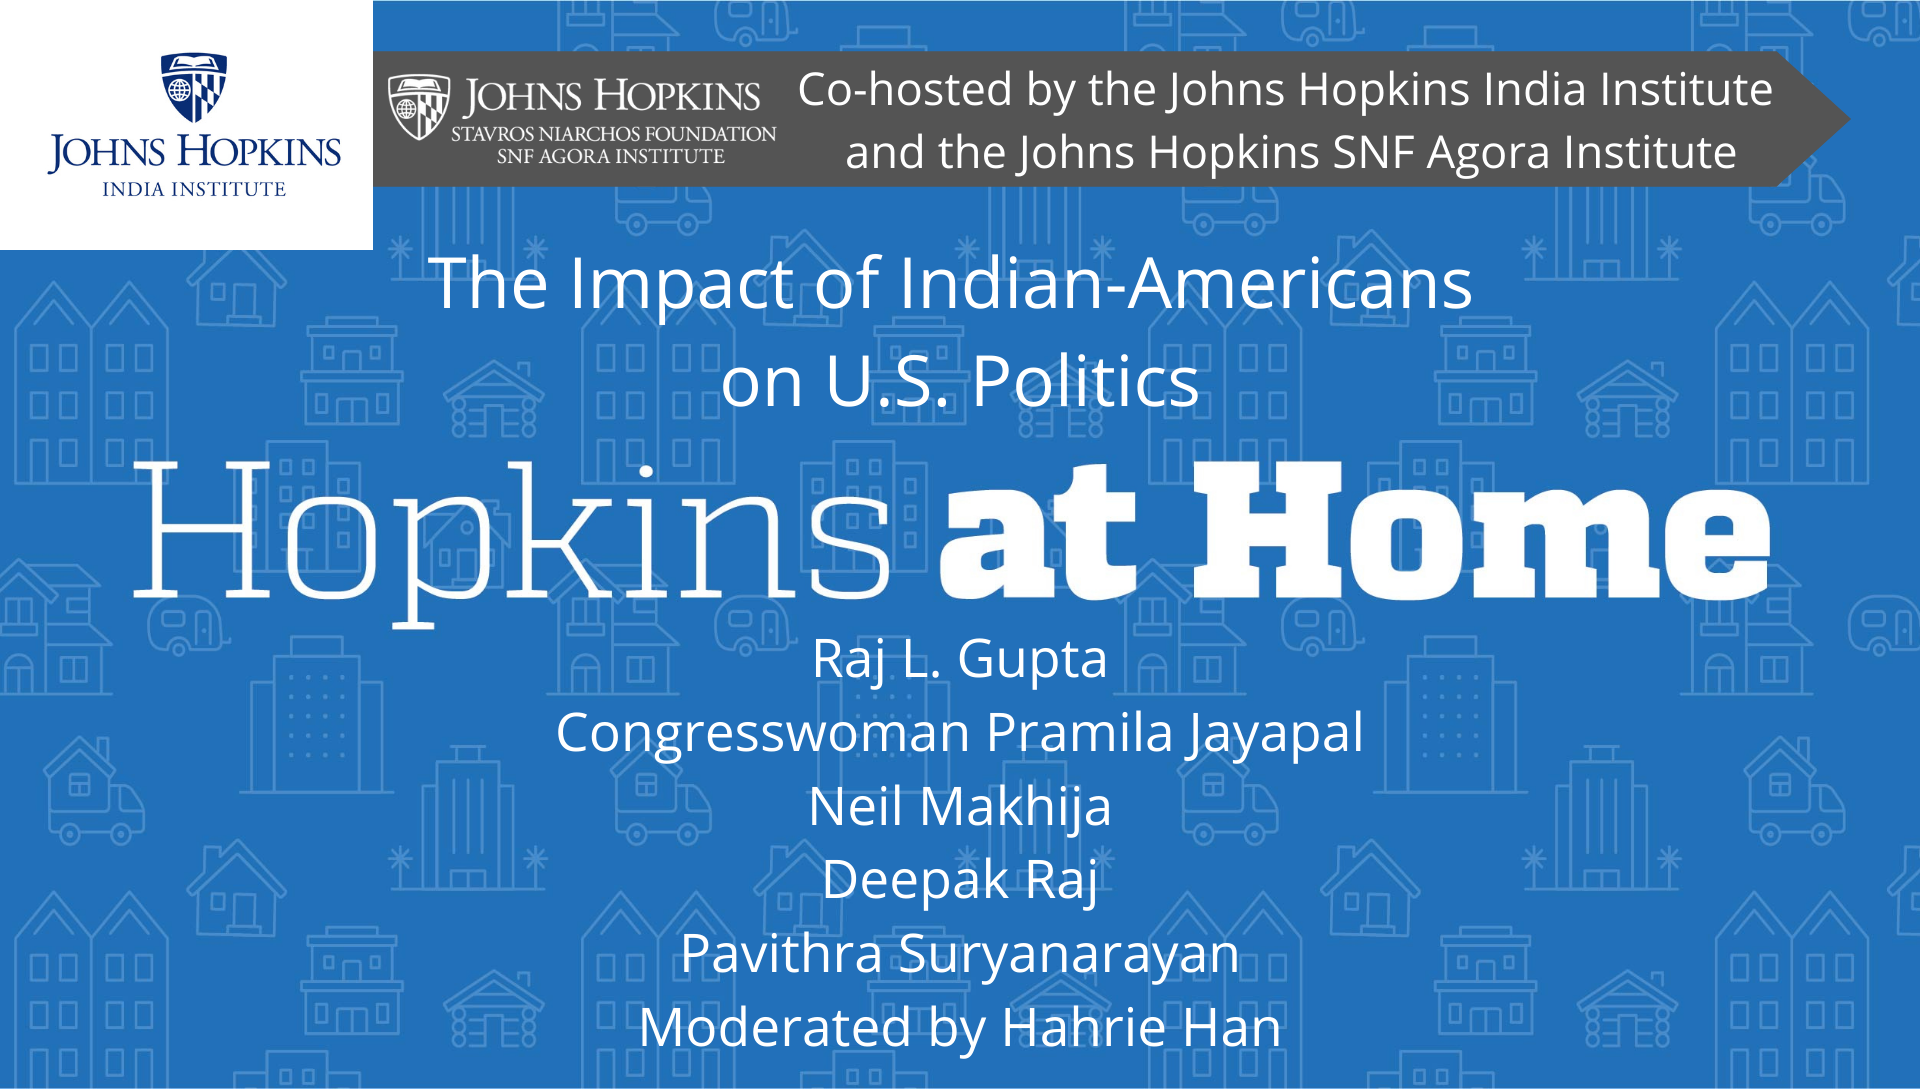 REBROADCAST | The Impact of Indian-Americans on U.S. Politics, Co-Hosted by the Johns Hopkins India Institute and SNF Agora Institute header image